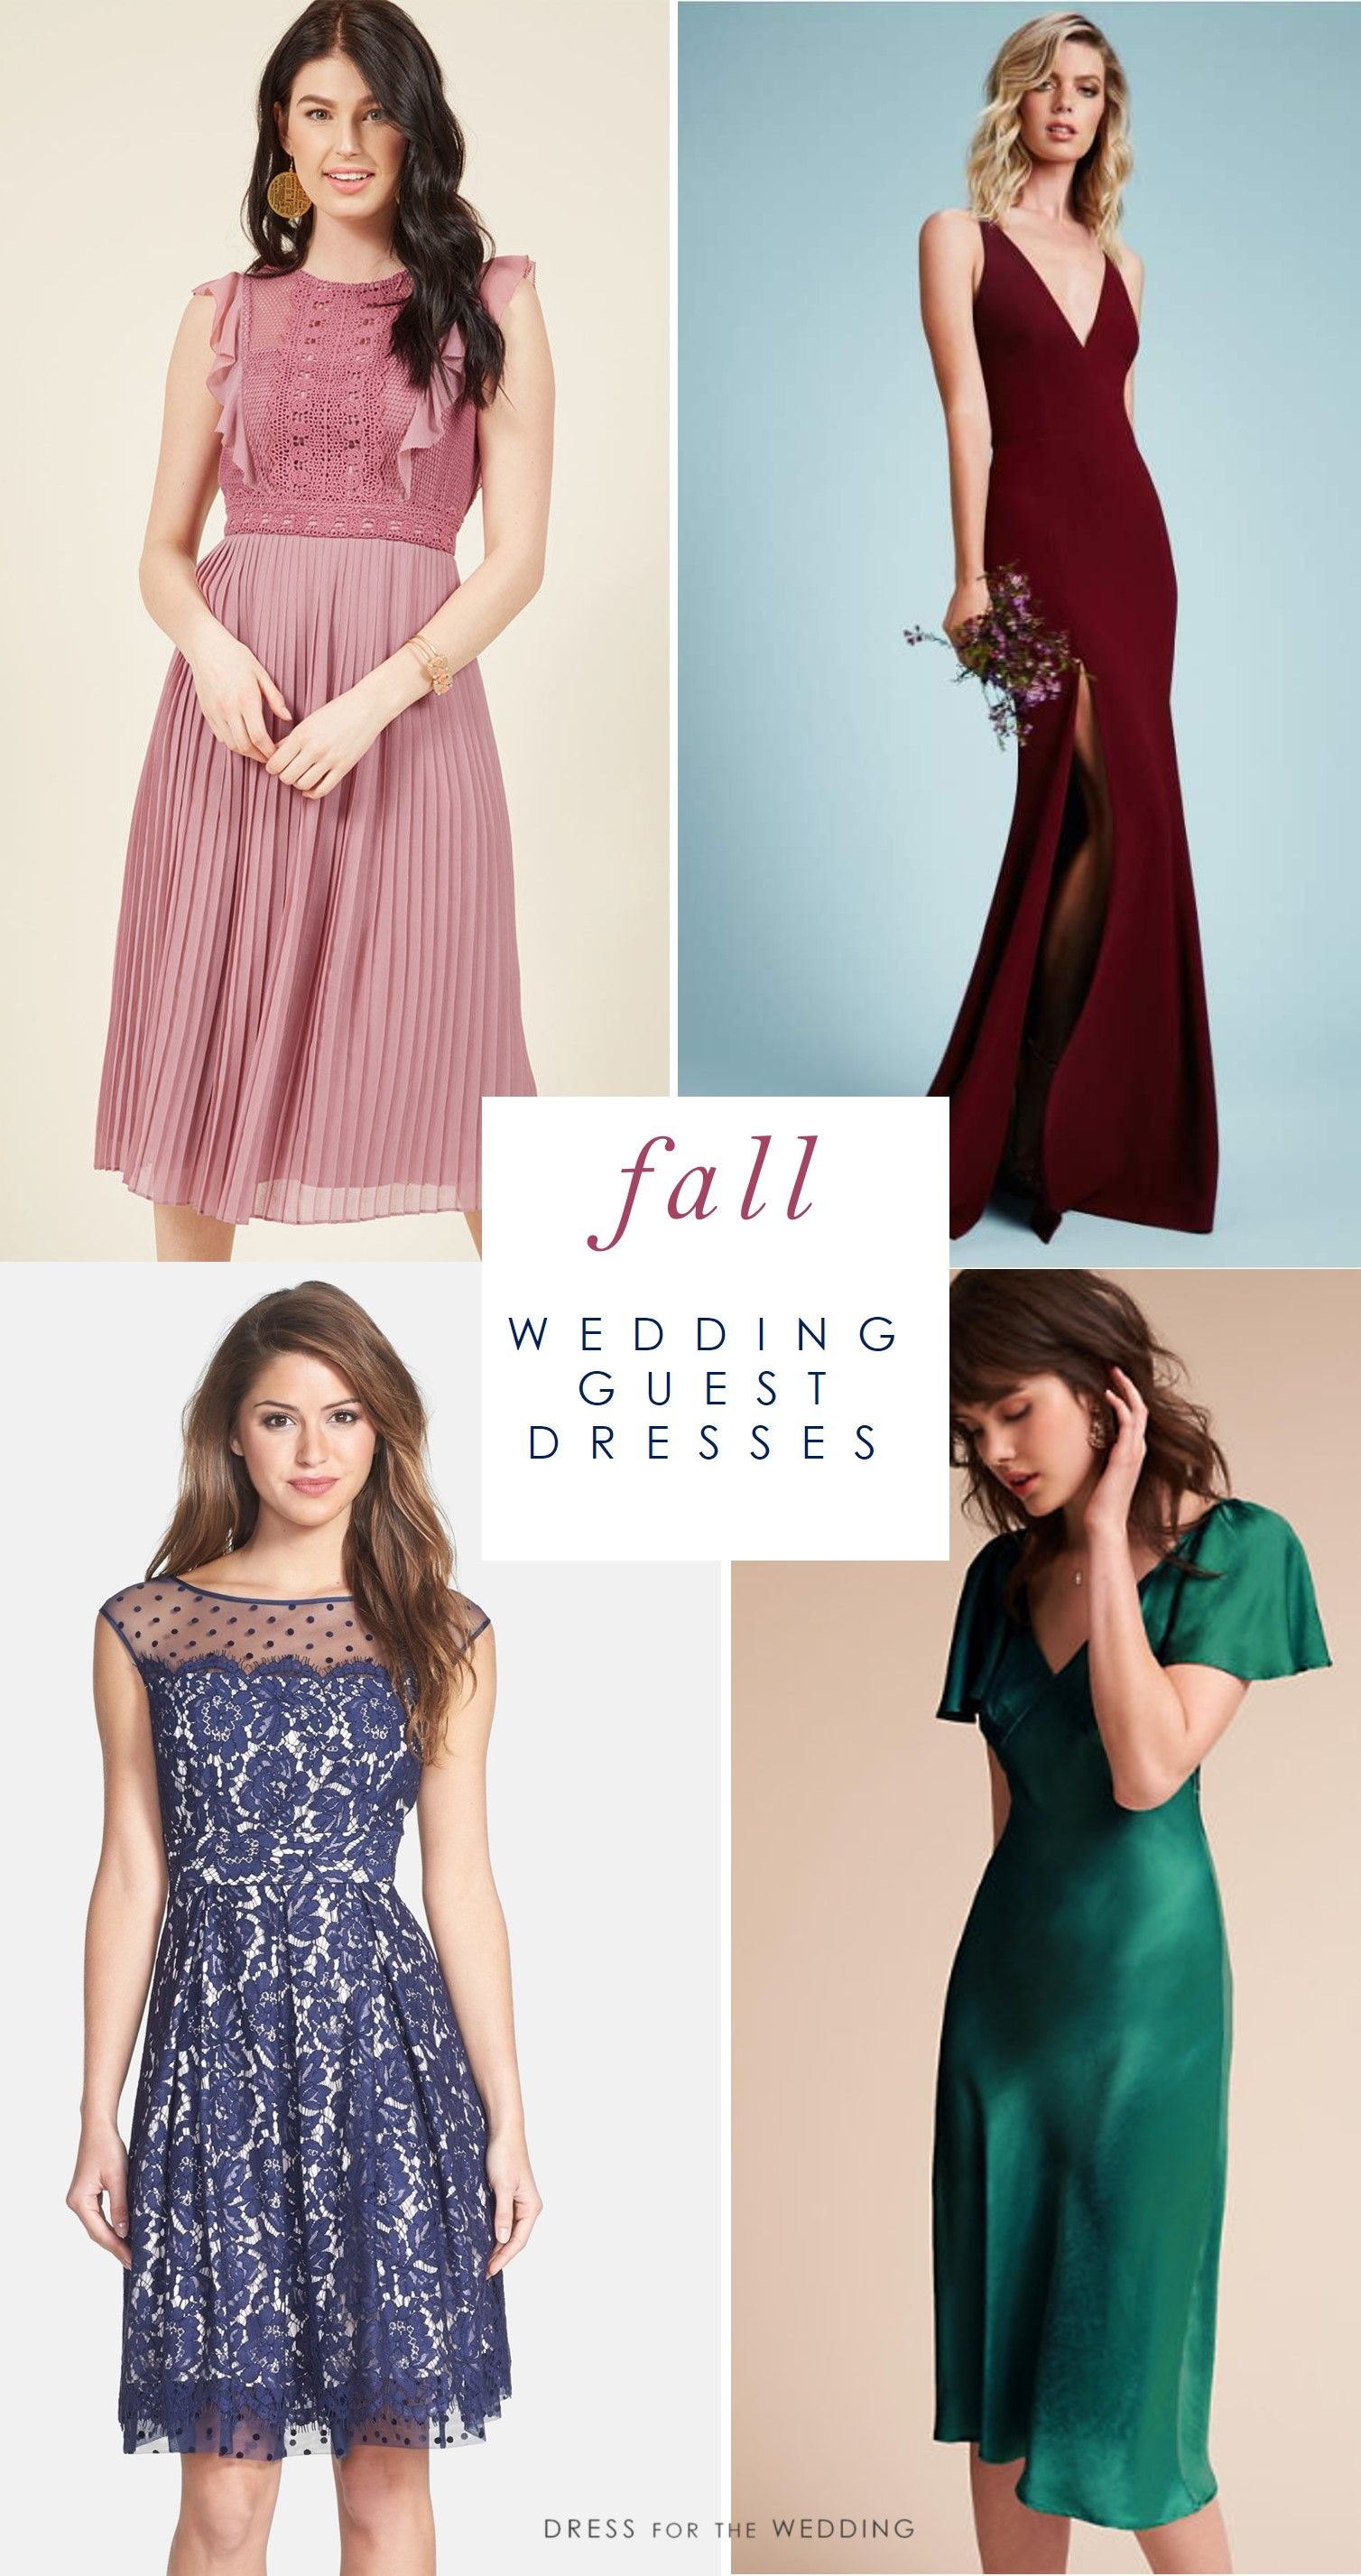 Fall Wedding Guest Dresses Dress For The Wedding Wedding Guest Outfit Fall Wedding Attire Guest Fall Wedding Outfits